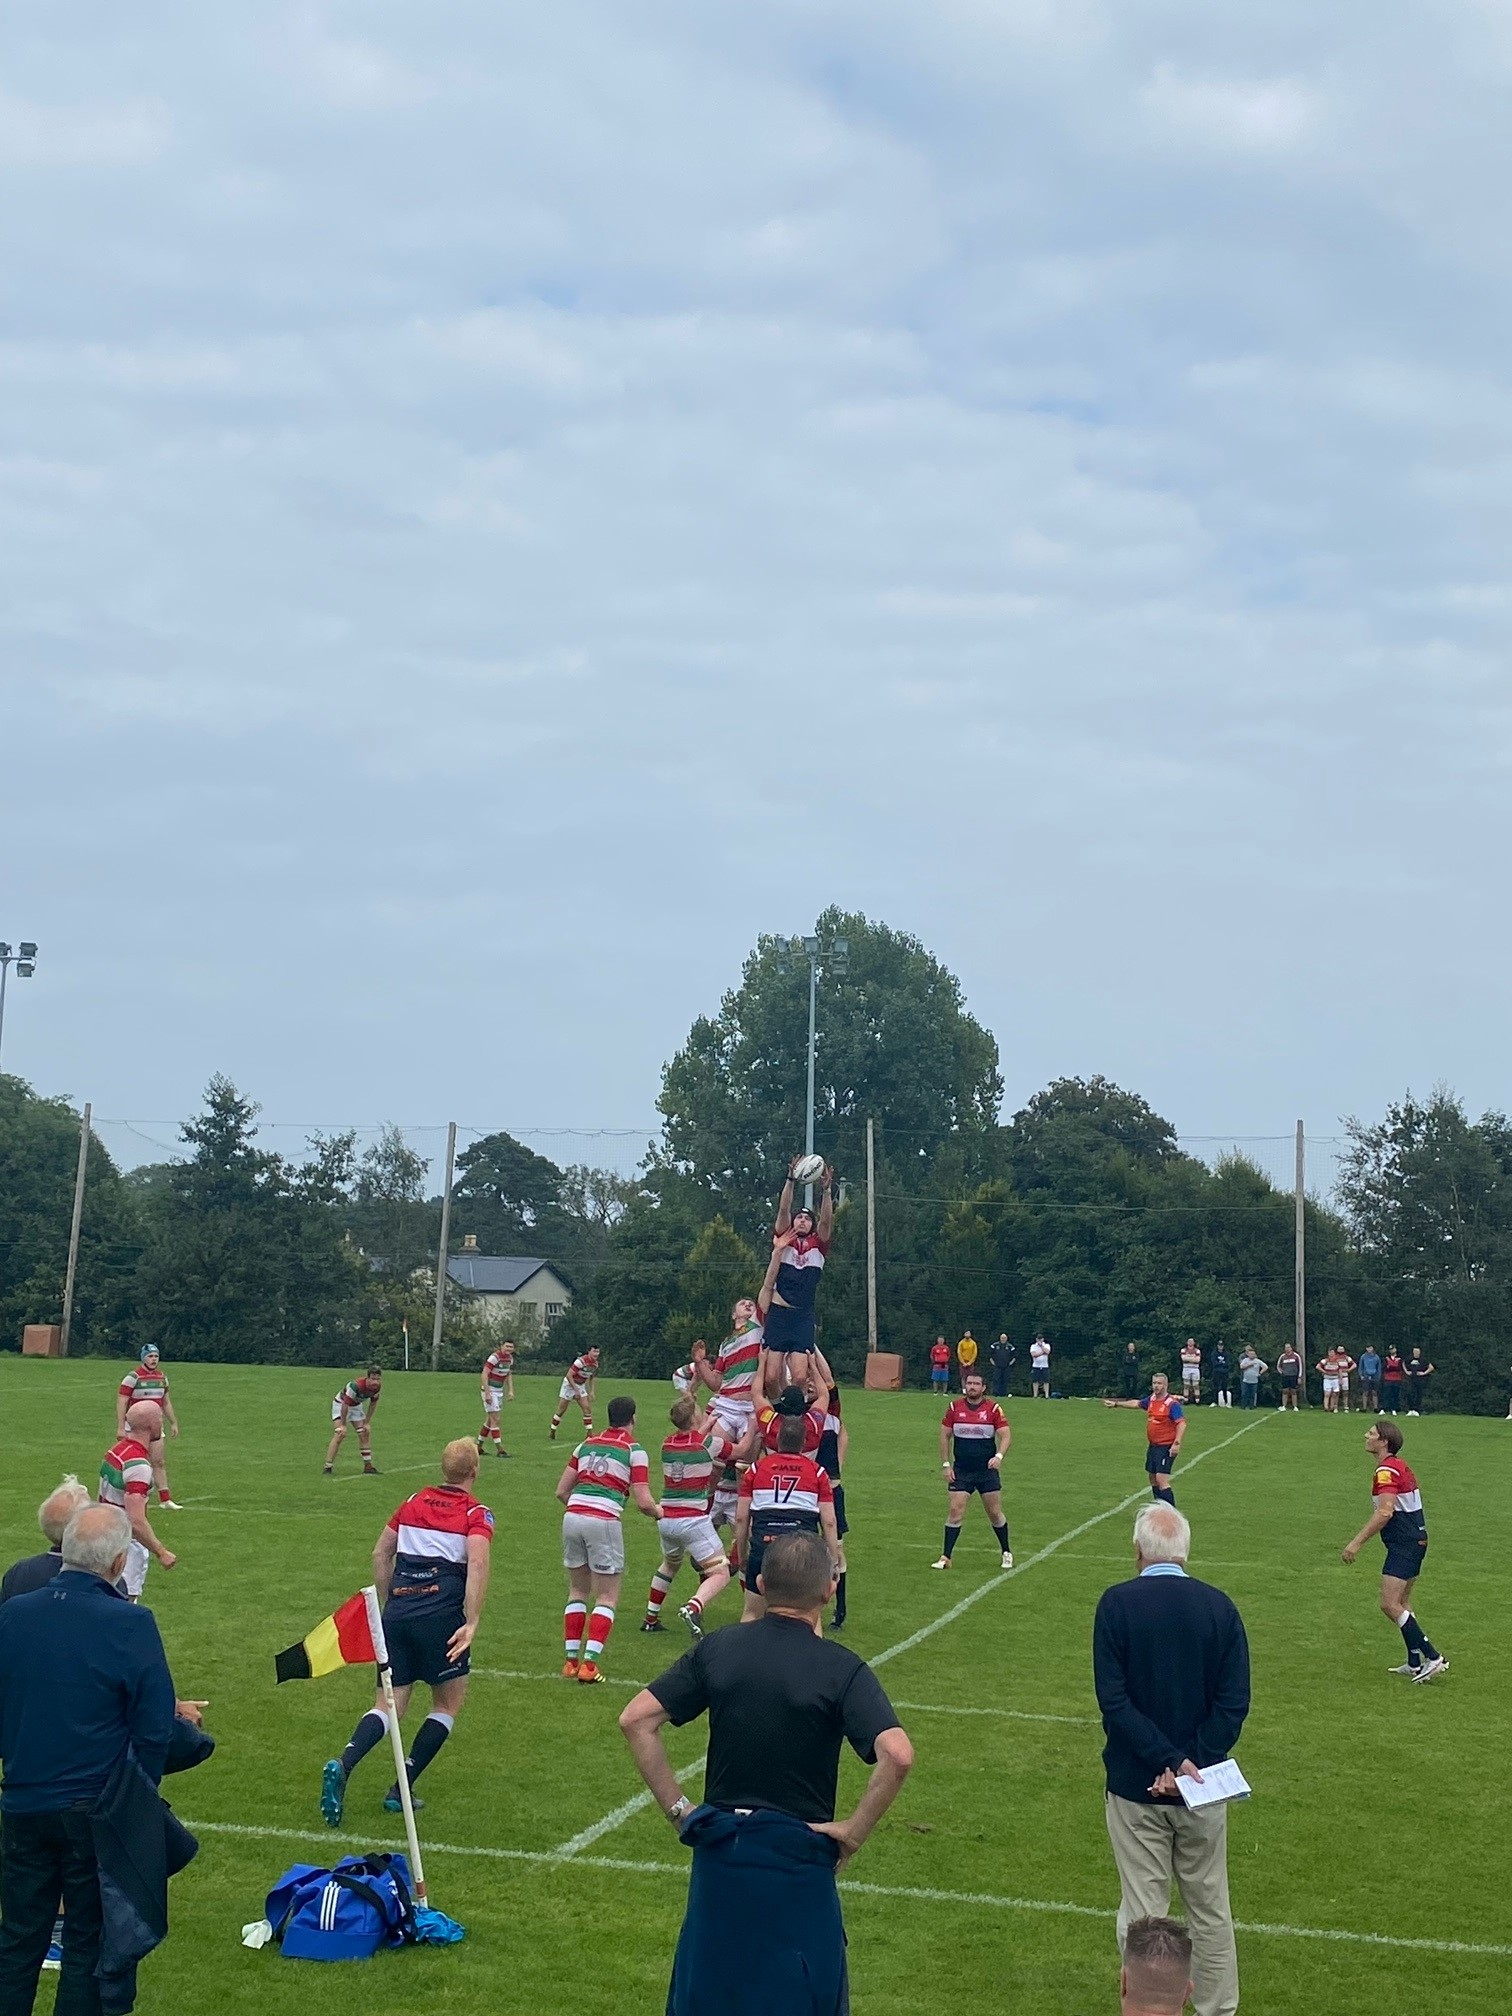 3rds-v-Bective-oconnell-cup-2021-2